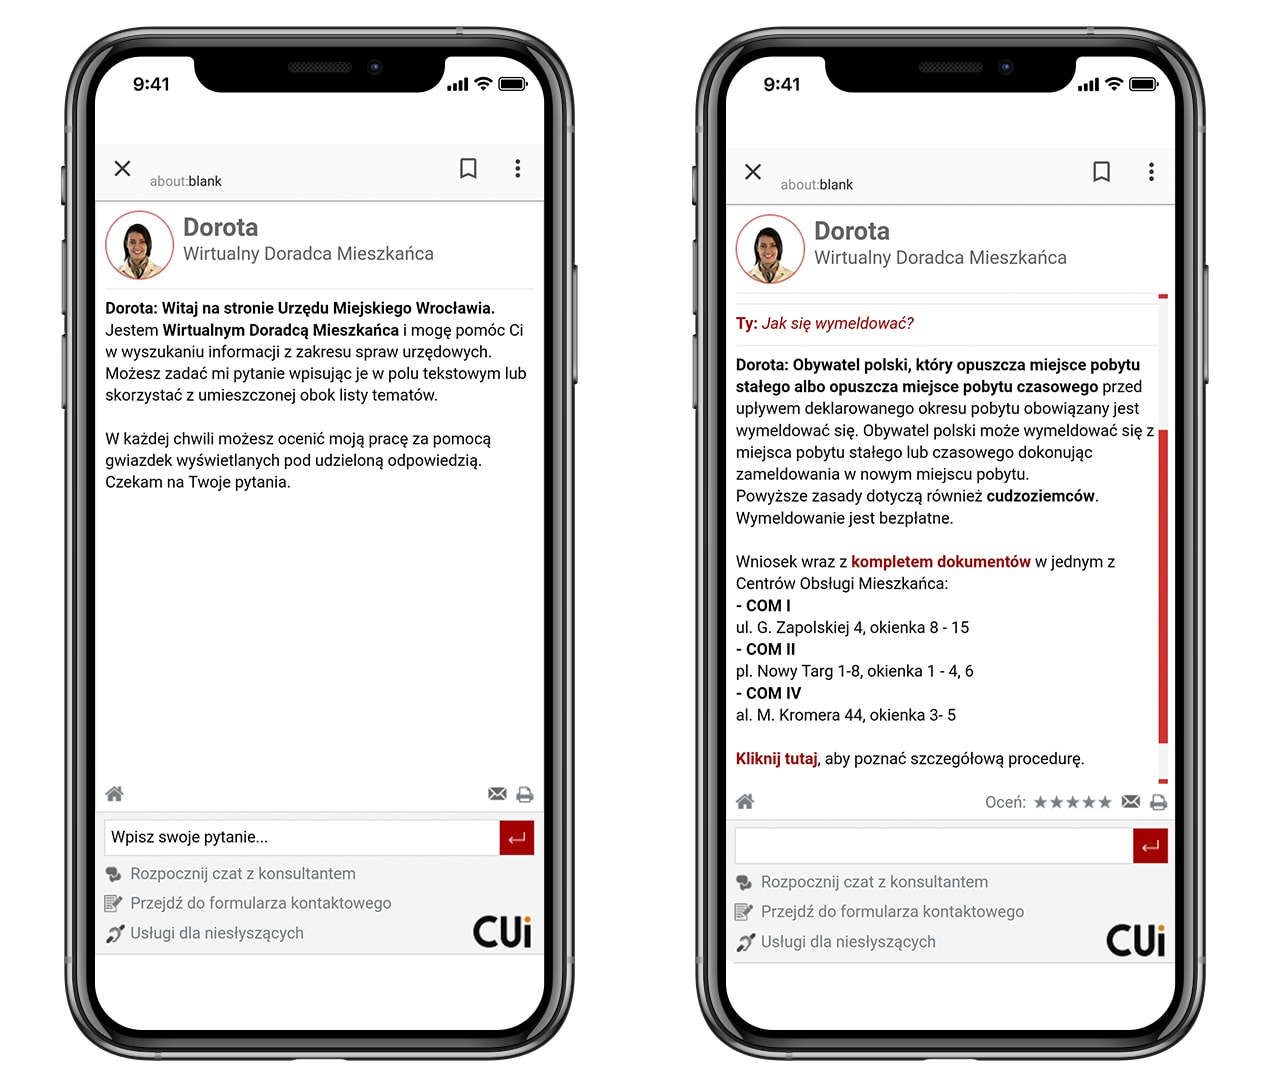 Thanks to AI, departments or ministries can markedly improve service, also saving taxpayers' money. Chatbot used as part of one of the most important and overloaded IT systems in Poland